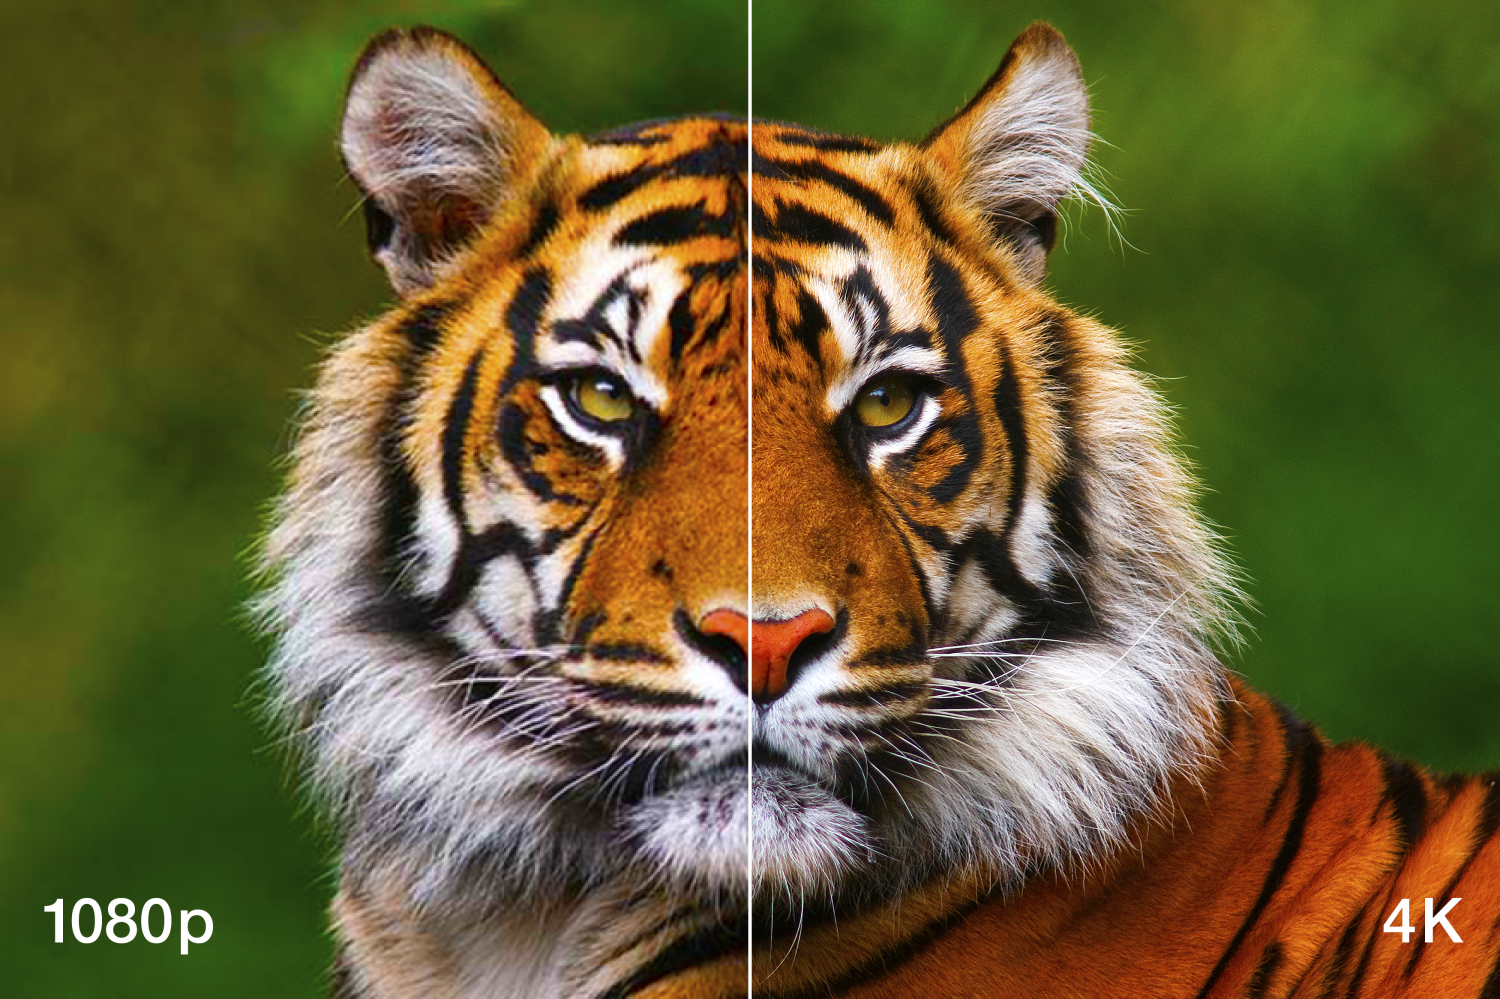 Image of Lion to compare 1080p image quality versus 4K image quality